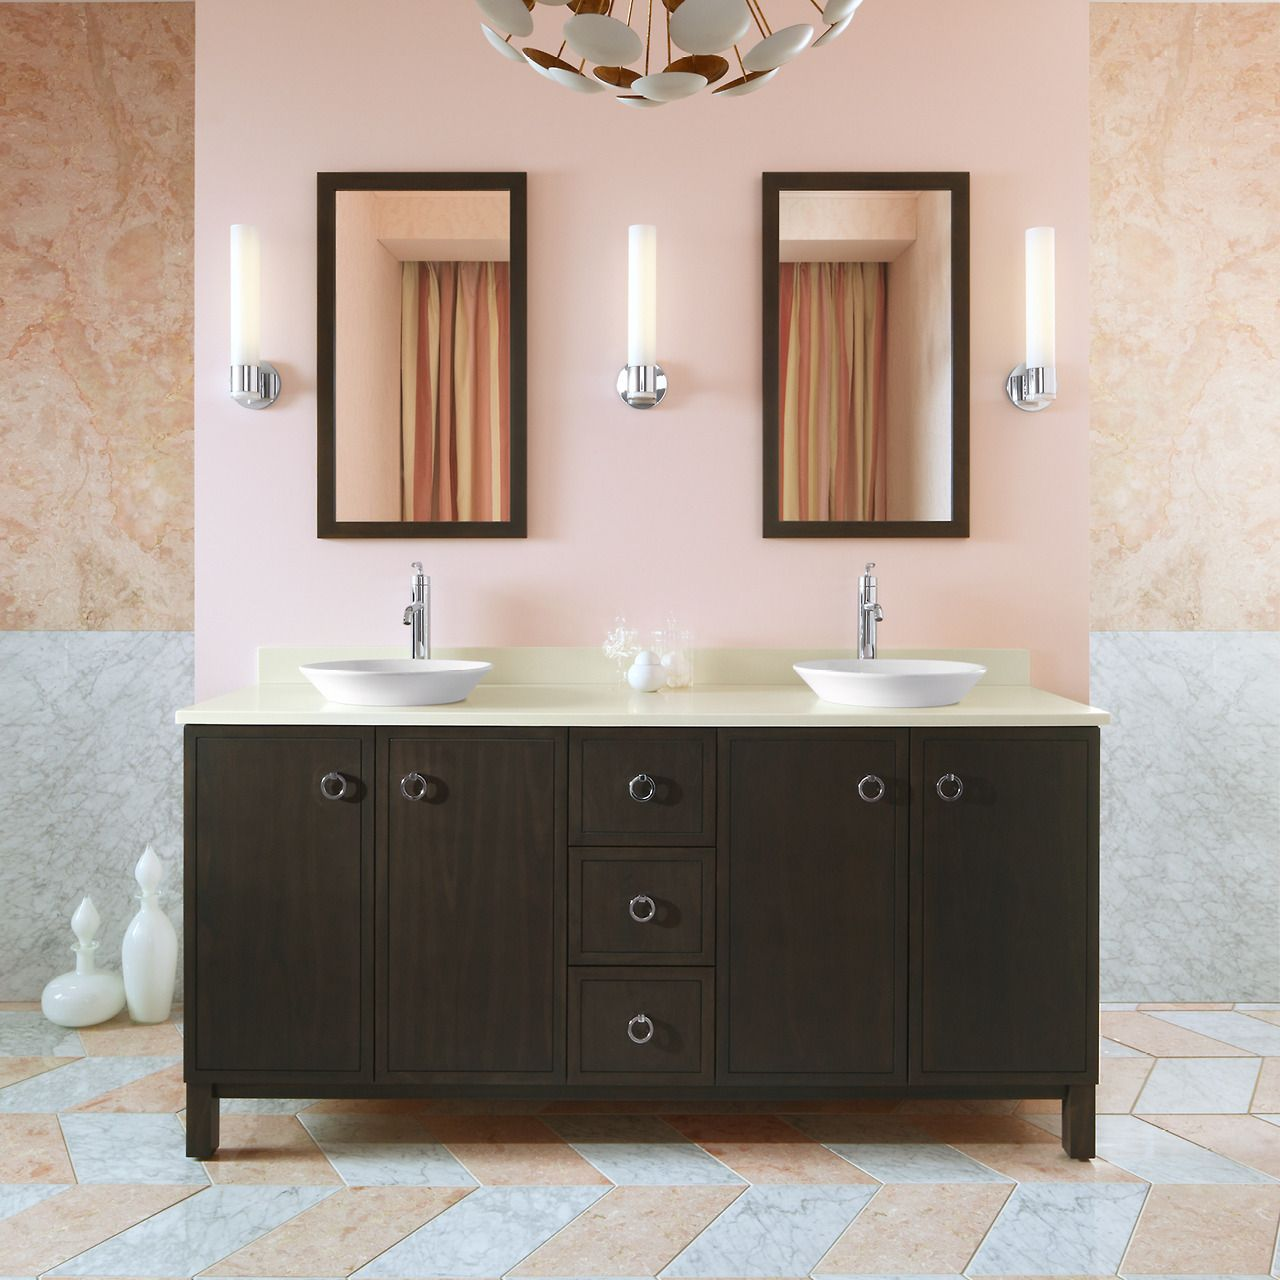 collections vanities kohler and content press expands tailored popular us tresham htm vanity